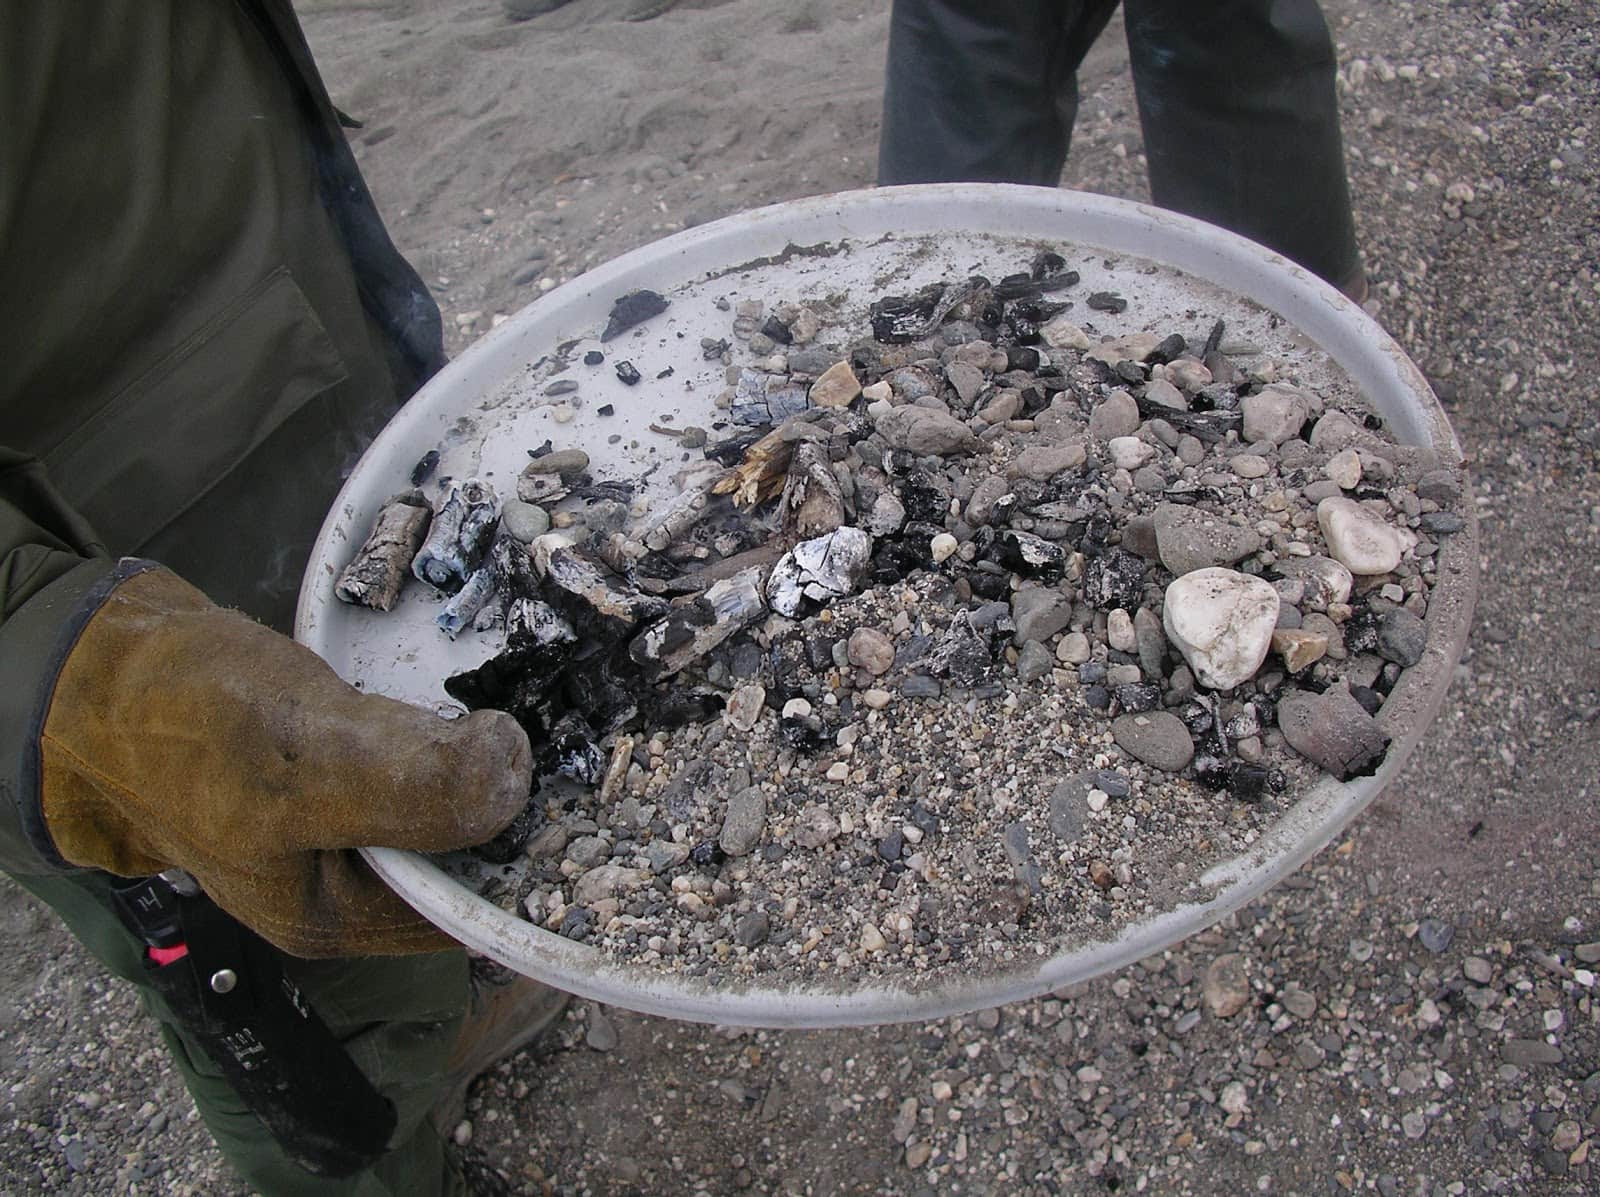 Caption: A fire pan significantly reduces the amount of impact that a campfire will have on the topsoil and the local ecosystem. Image provided by U.S. Government National Park Service